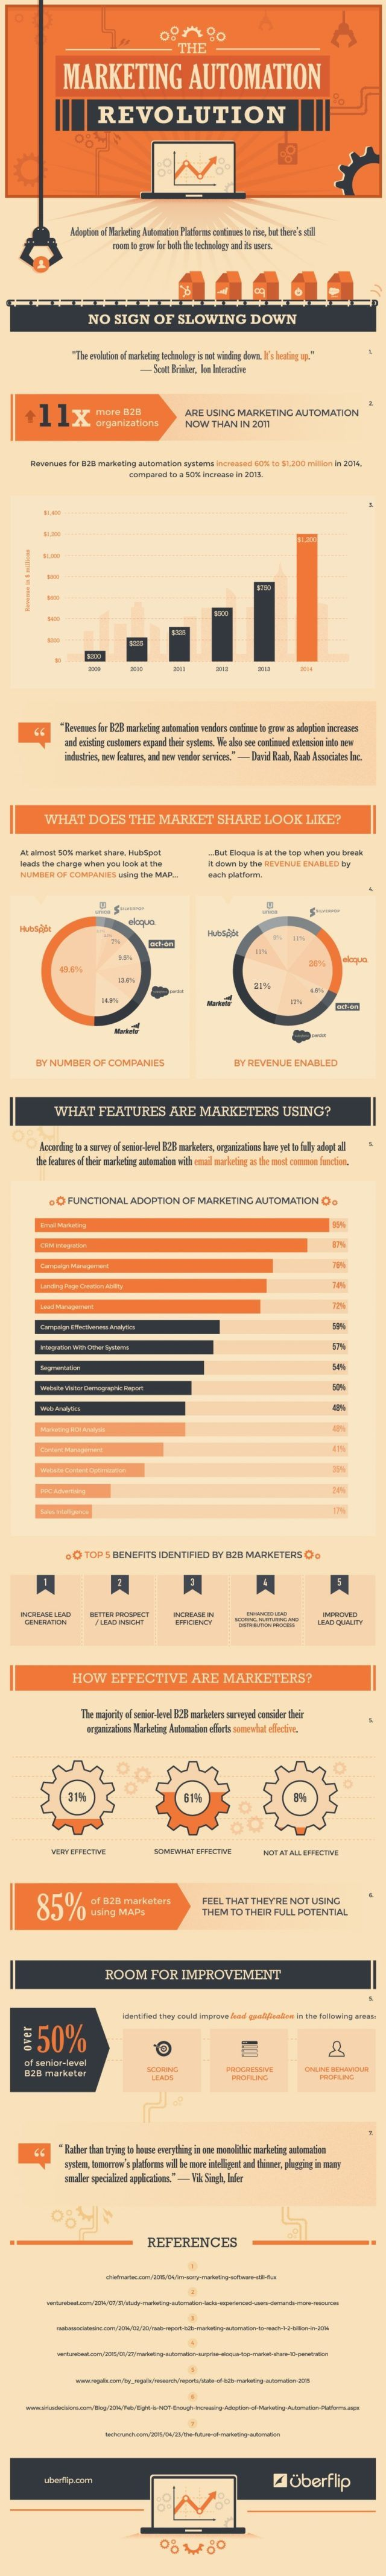 State of B2B Marketing Automation